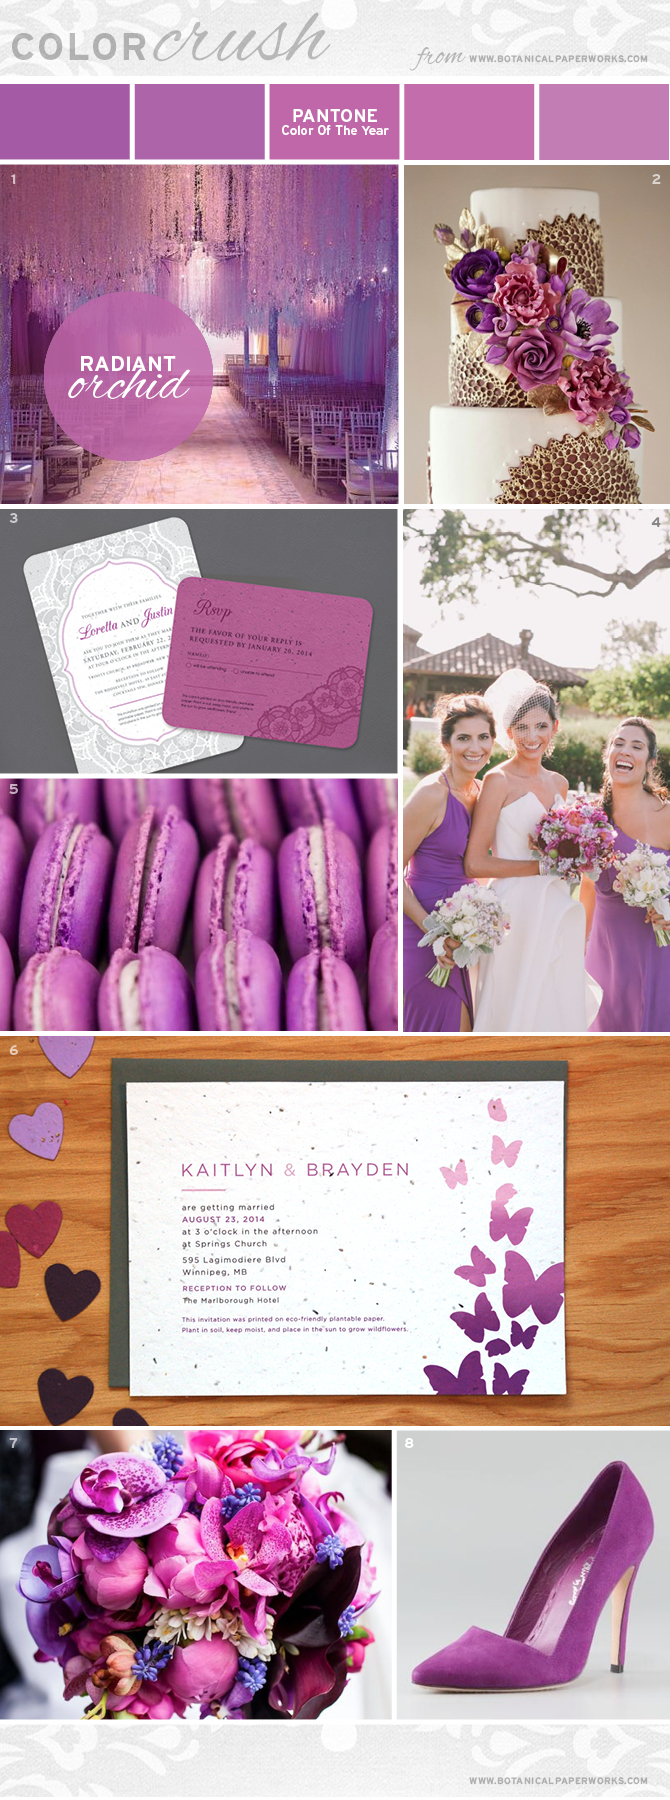 From flowers and invites to cookies and pumps, this perfectly-pinnable Radiant Orchid Color Crush is sure to spark your imagination.